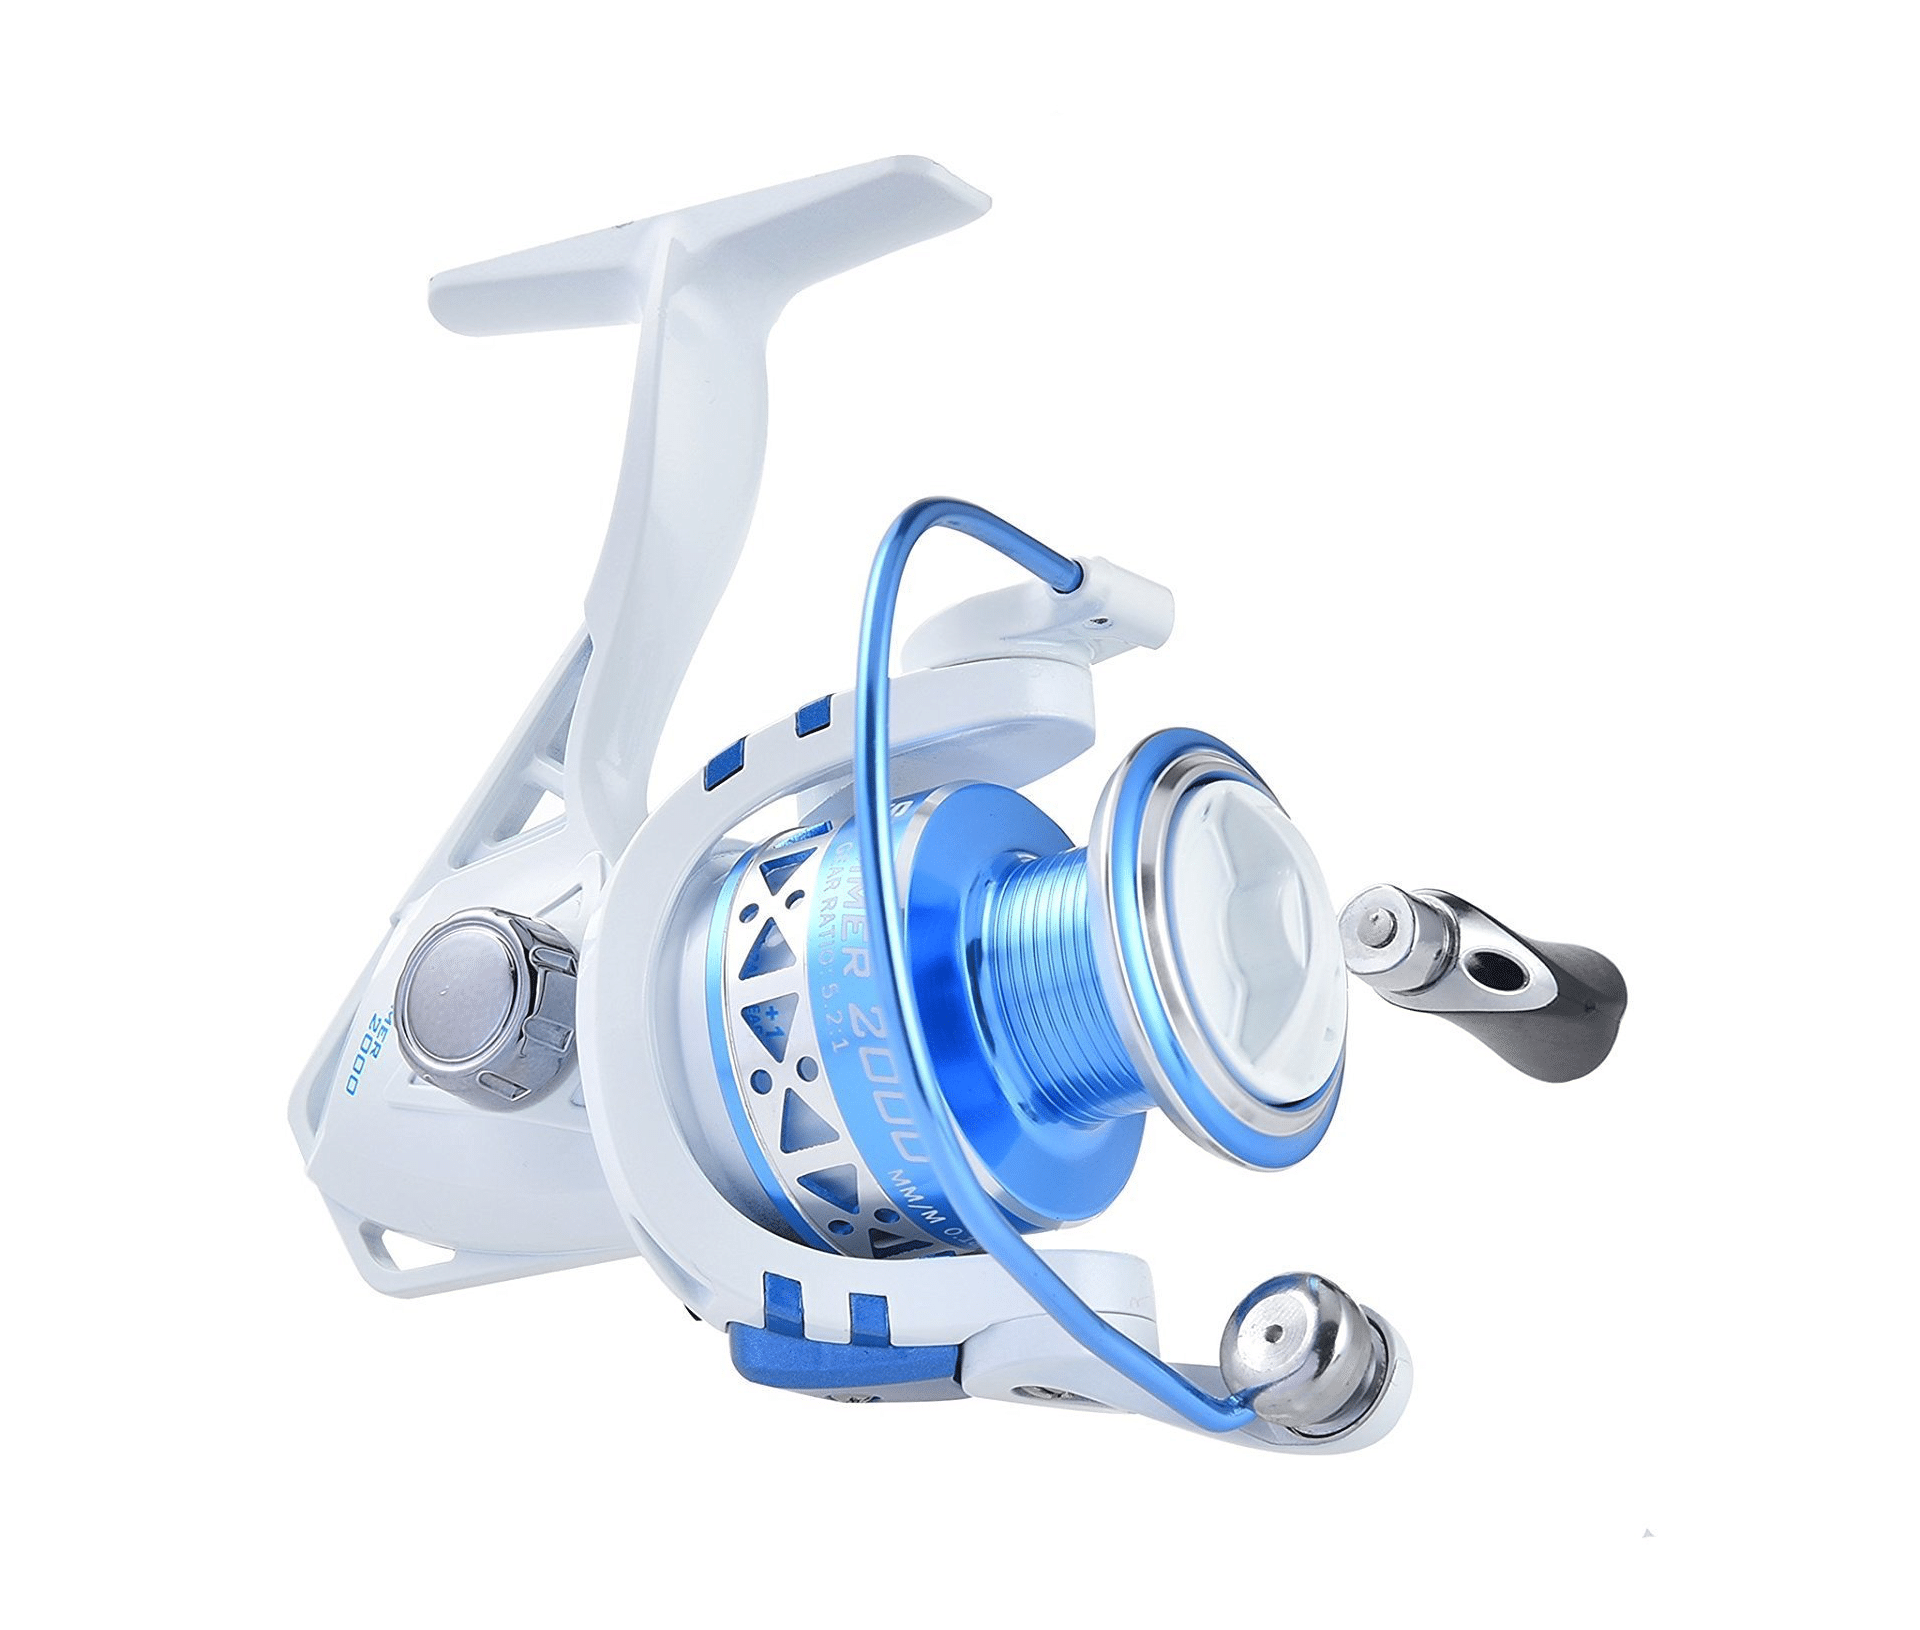 KastKing Summer/Centron Spinning Reel